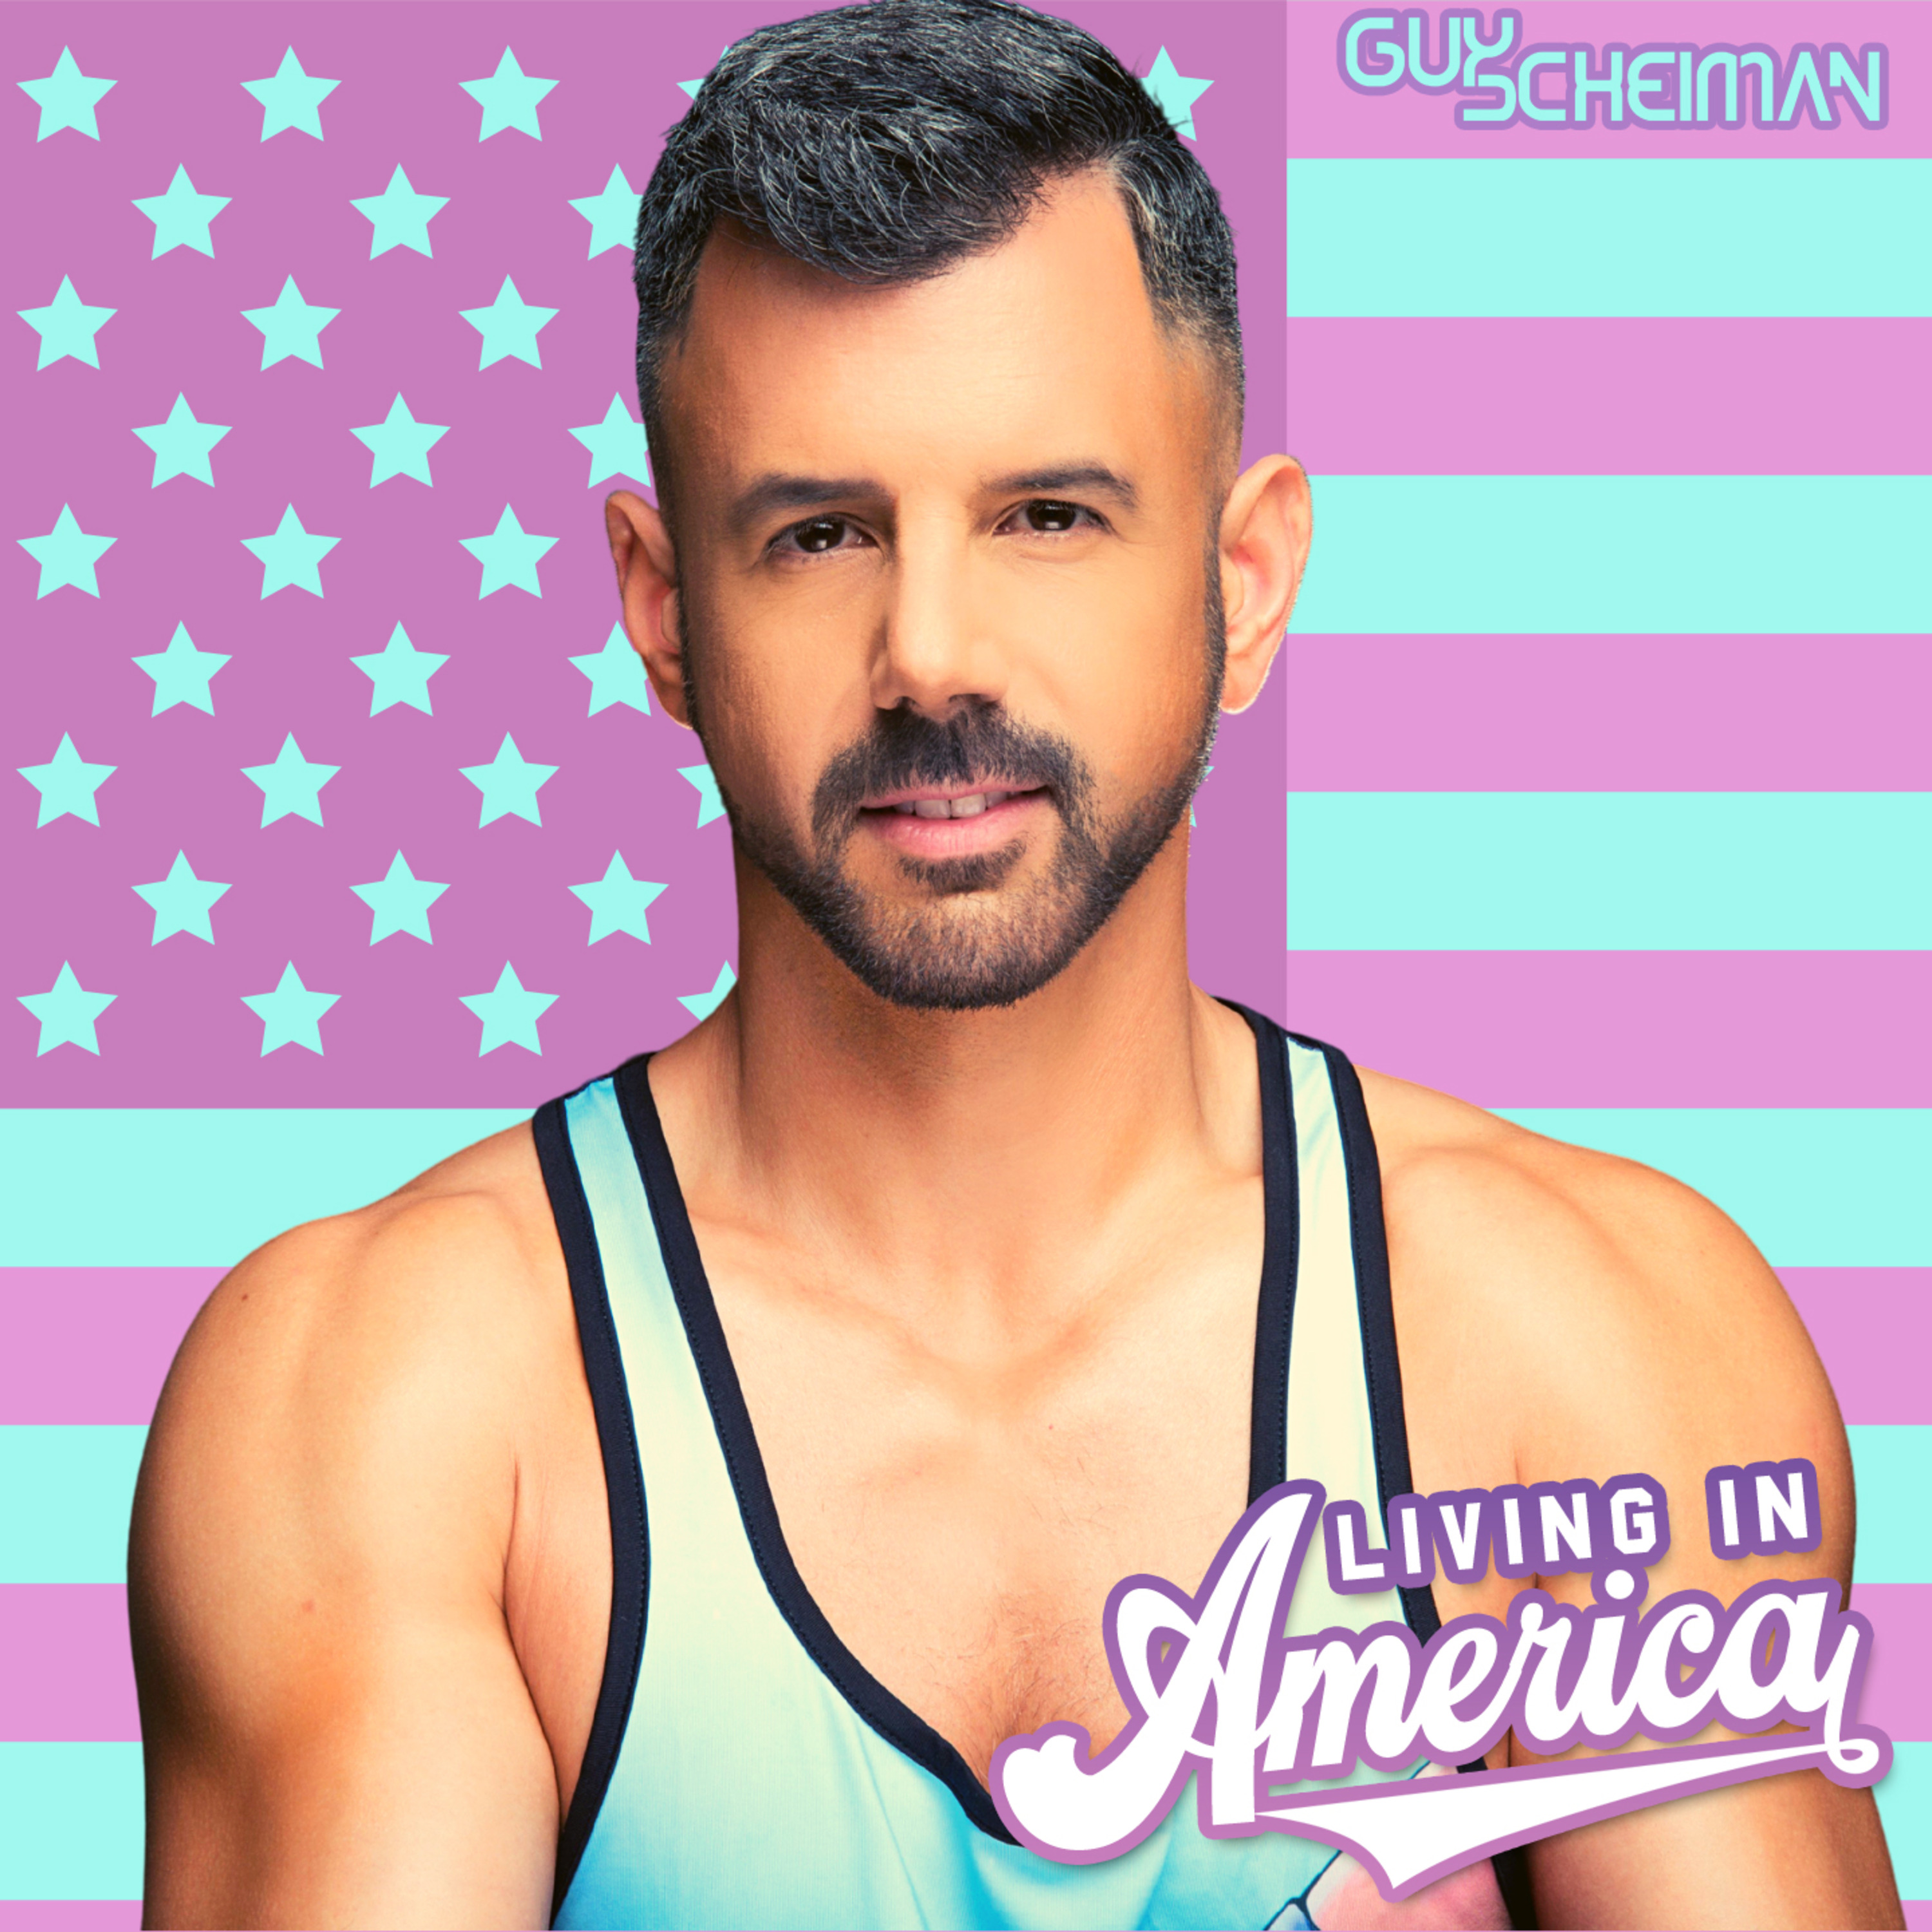 'Living In America' Mixed By Guy Scheiman